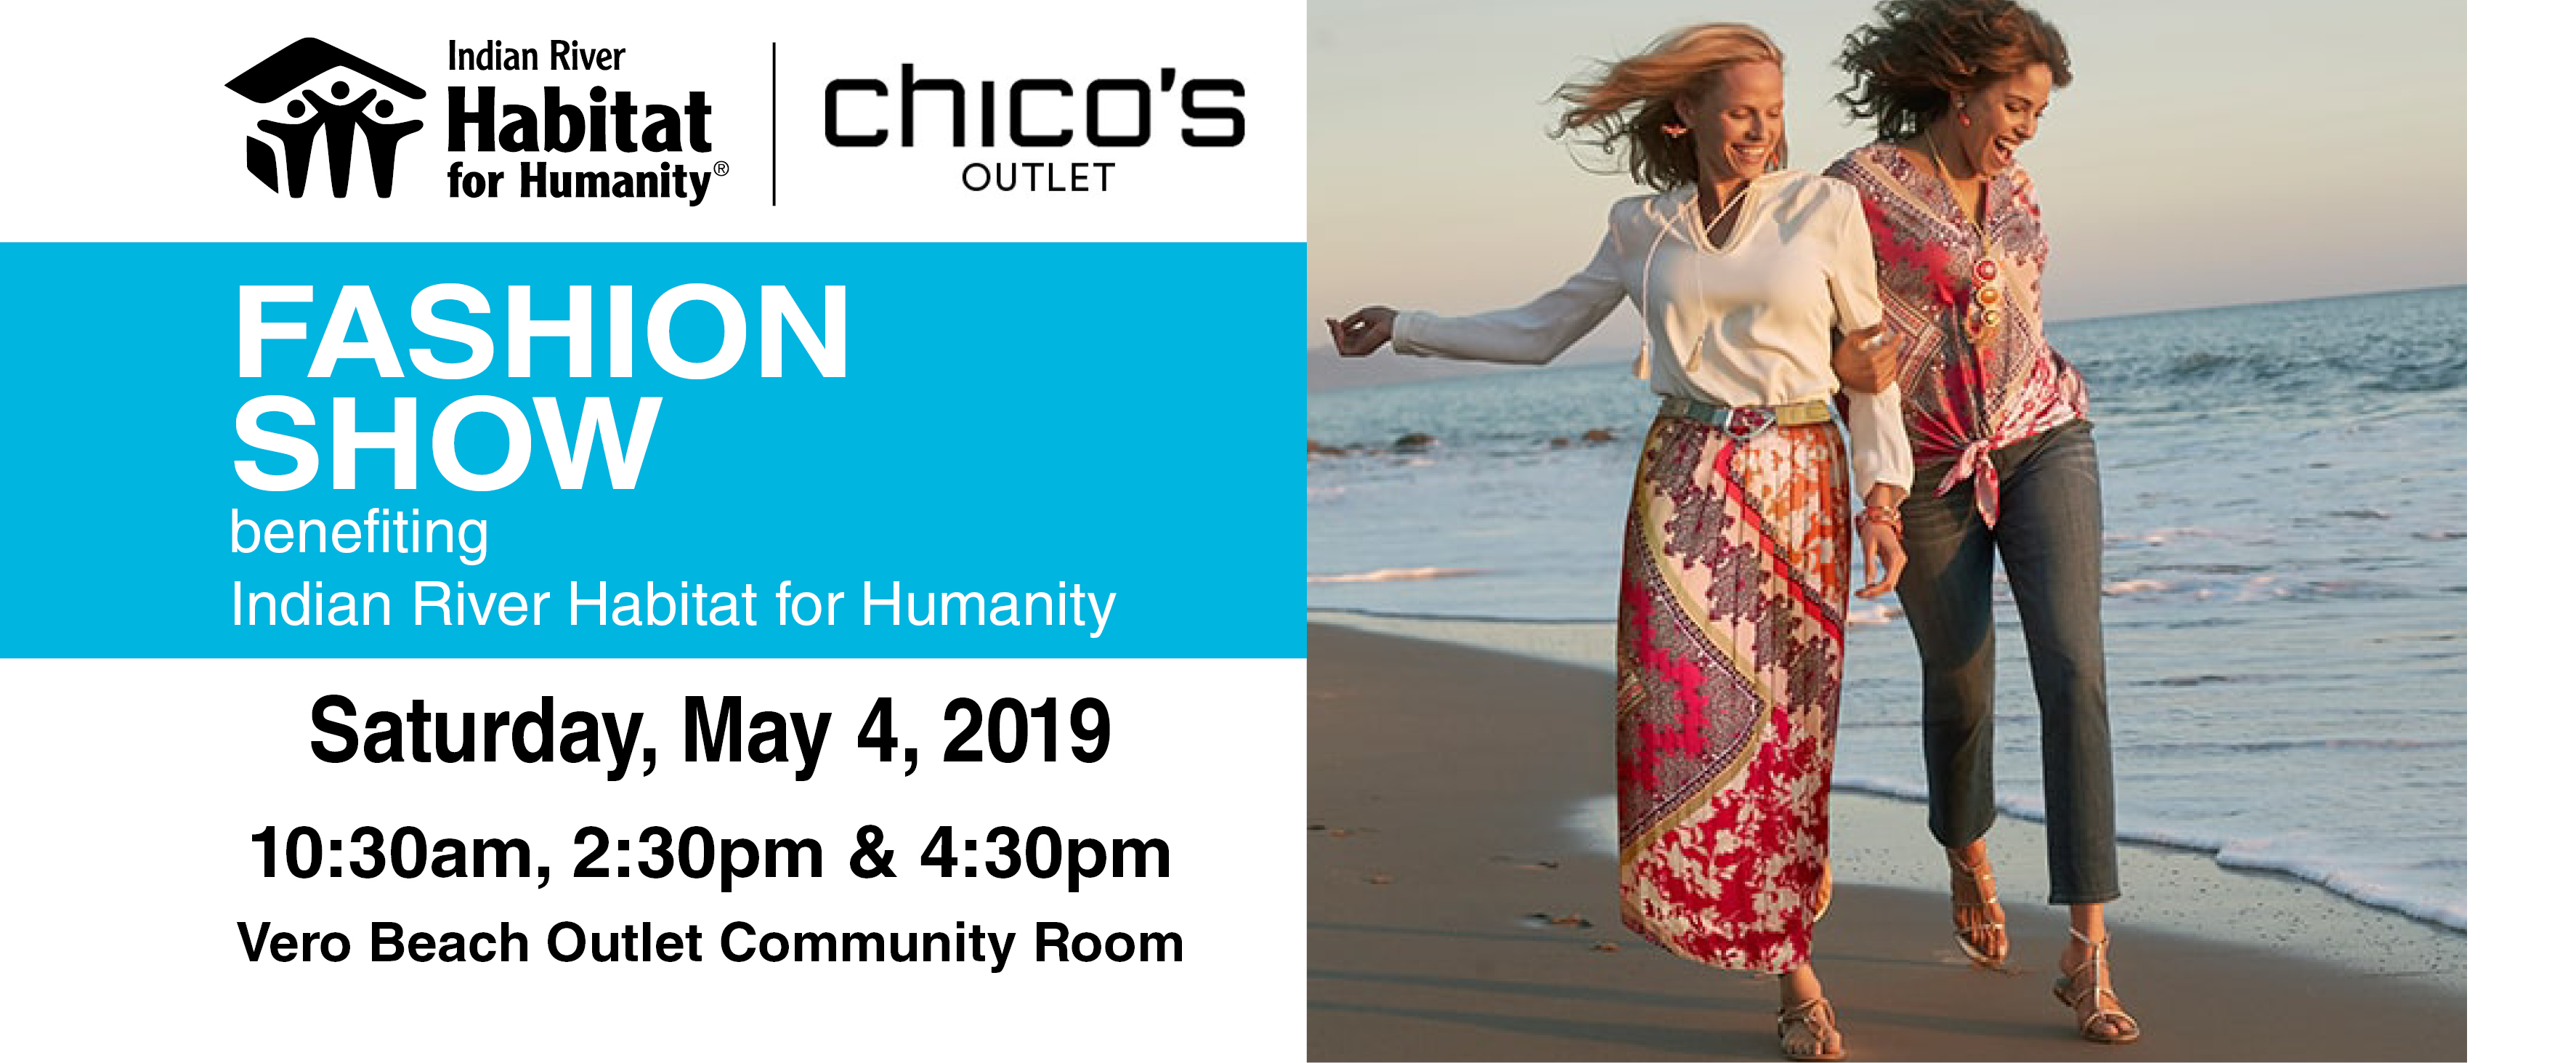 dfe77059 Chico's Outlet will host three fashion shows to benefit Indian River  Habitat for Humanity. The 2:30 pm fashion show will feature our own Habitat  staff or ...